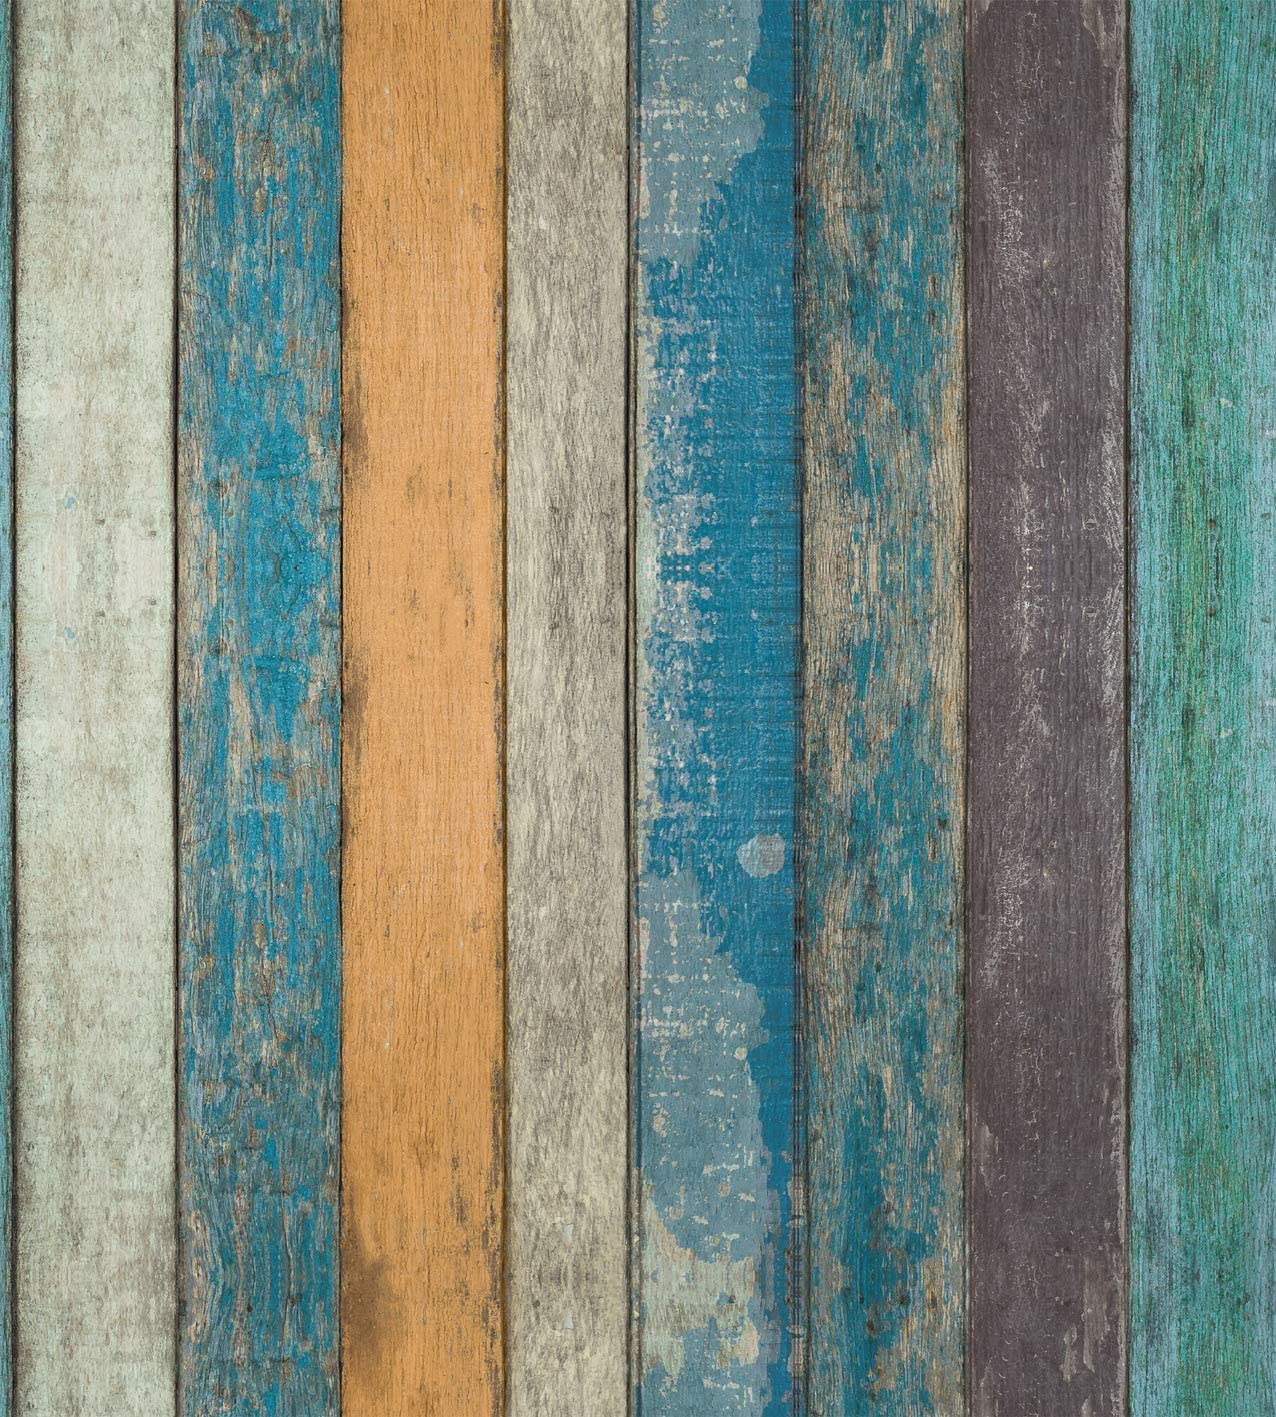 Rustic Plank Wood Peel and Stick Wallpaper - Wood Wallpaper – Removable Contact Paper, Prepasted Wall Paper or Adhesive Shelf Paper - Blue Green Black Multicolored Shiplap Wood Strips (17.71